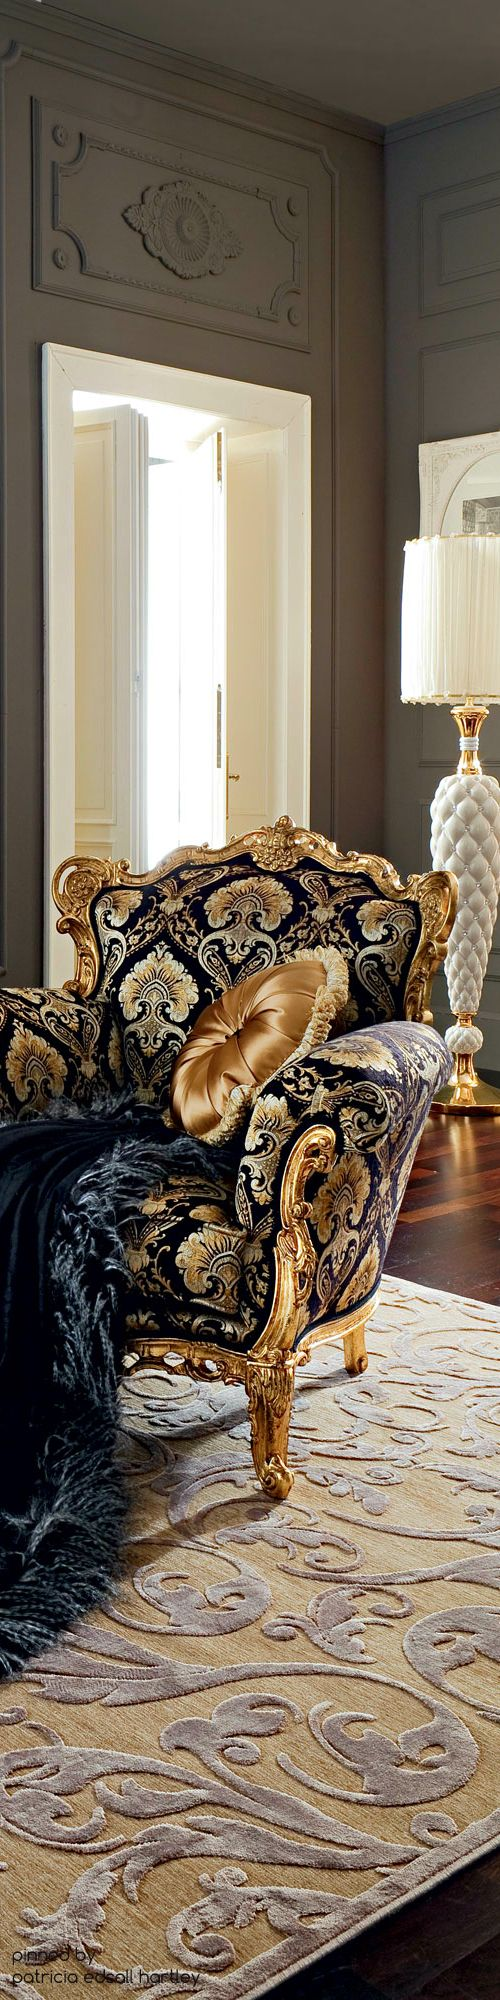 Beautiful chair with the gold trim, gold round pillow and the navy throw placed over the chair